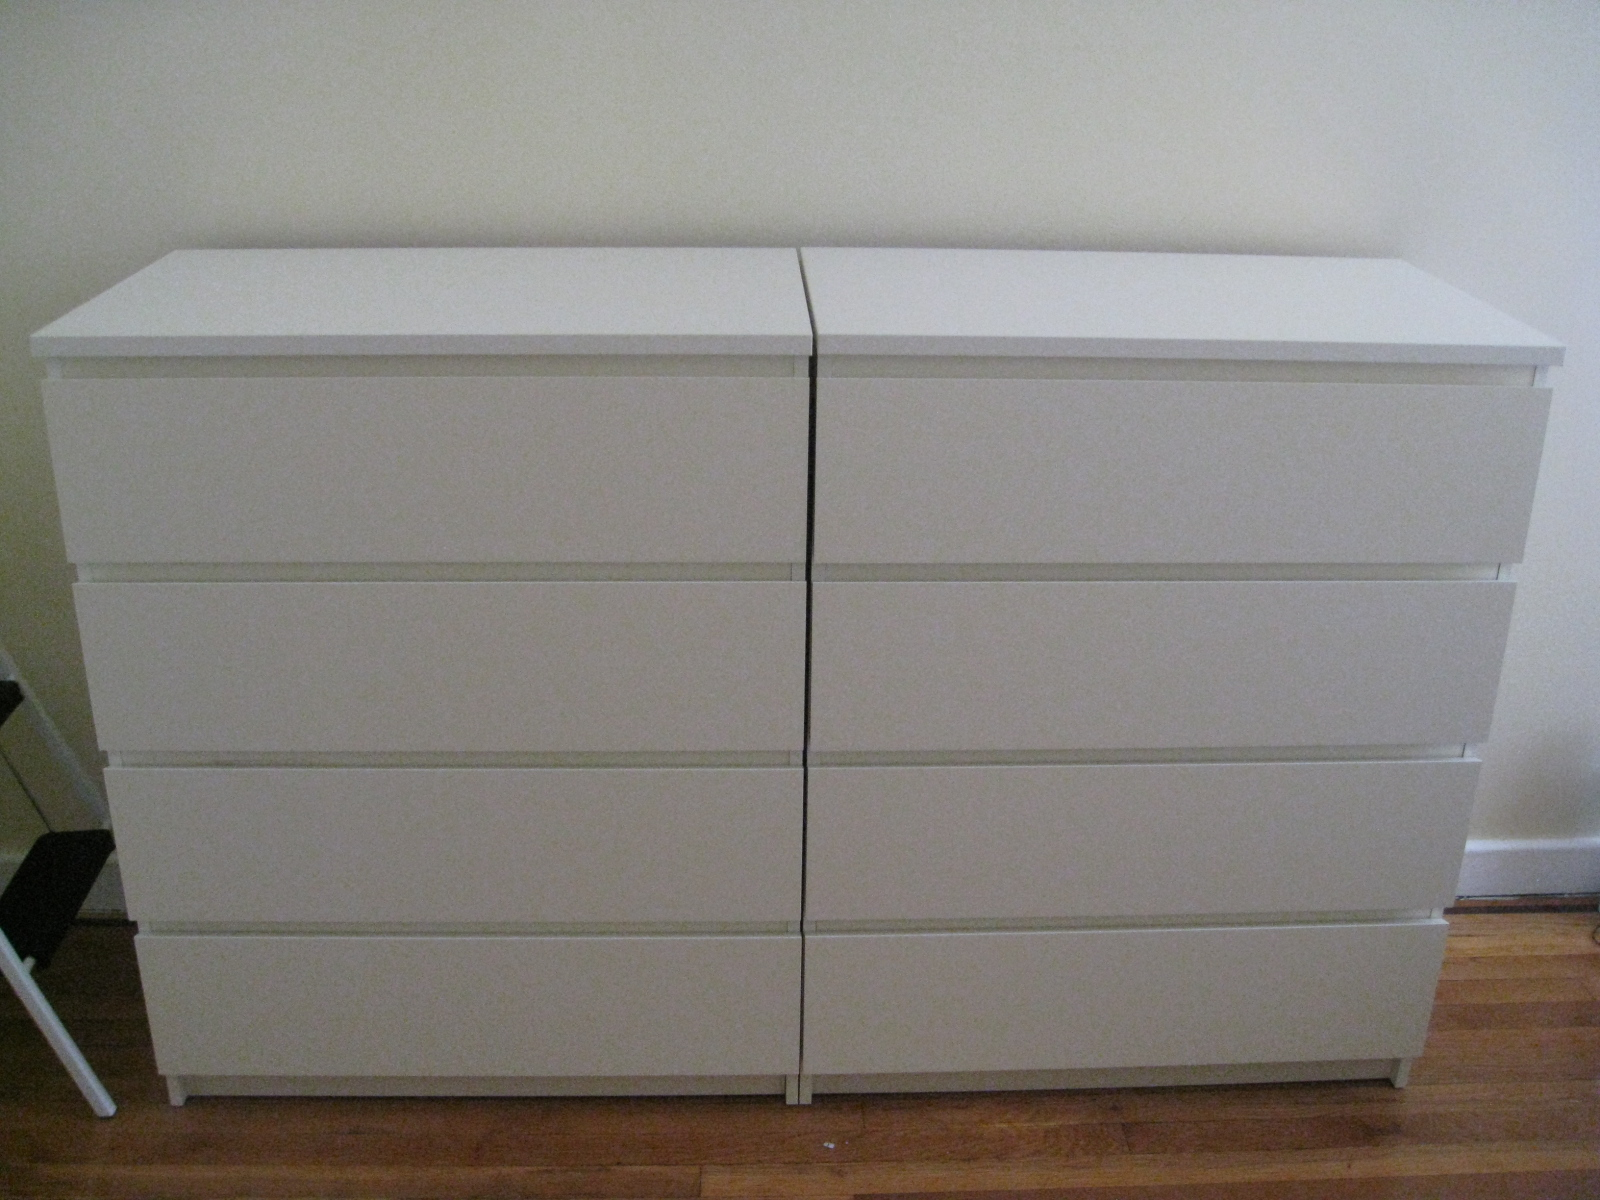 stretching for style new ikea dressers. Black Bedroom Furniture Sets. Home Design Ideas